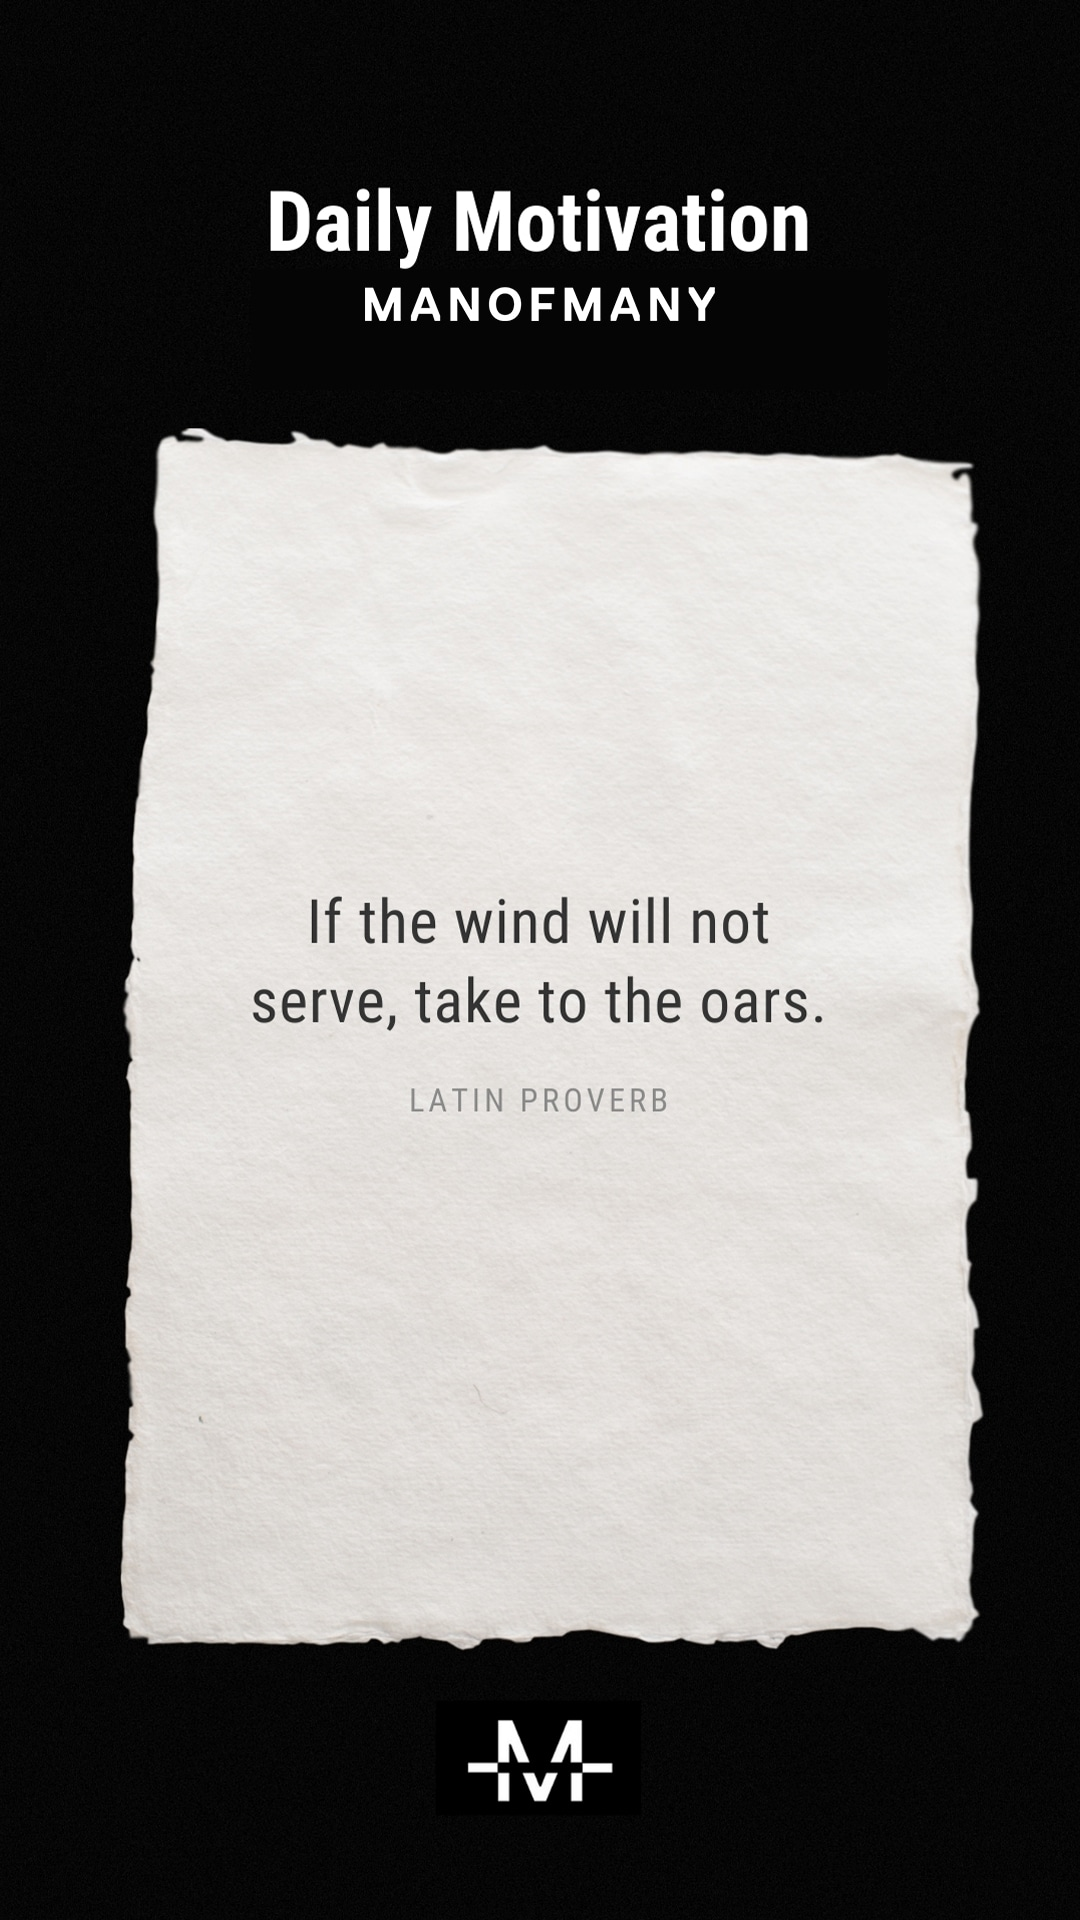 If the wind will not serve, take to the oars. –Latin Proverb